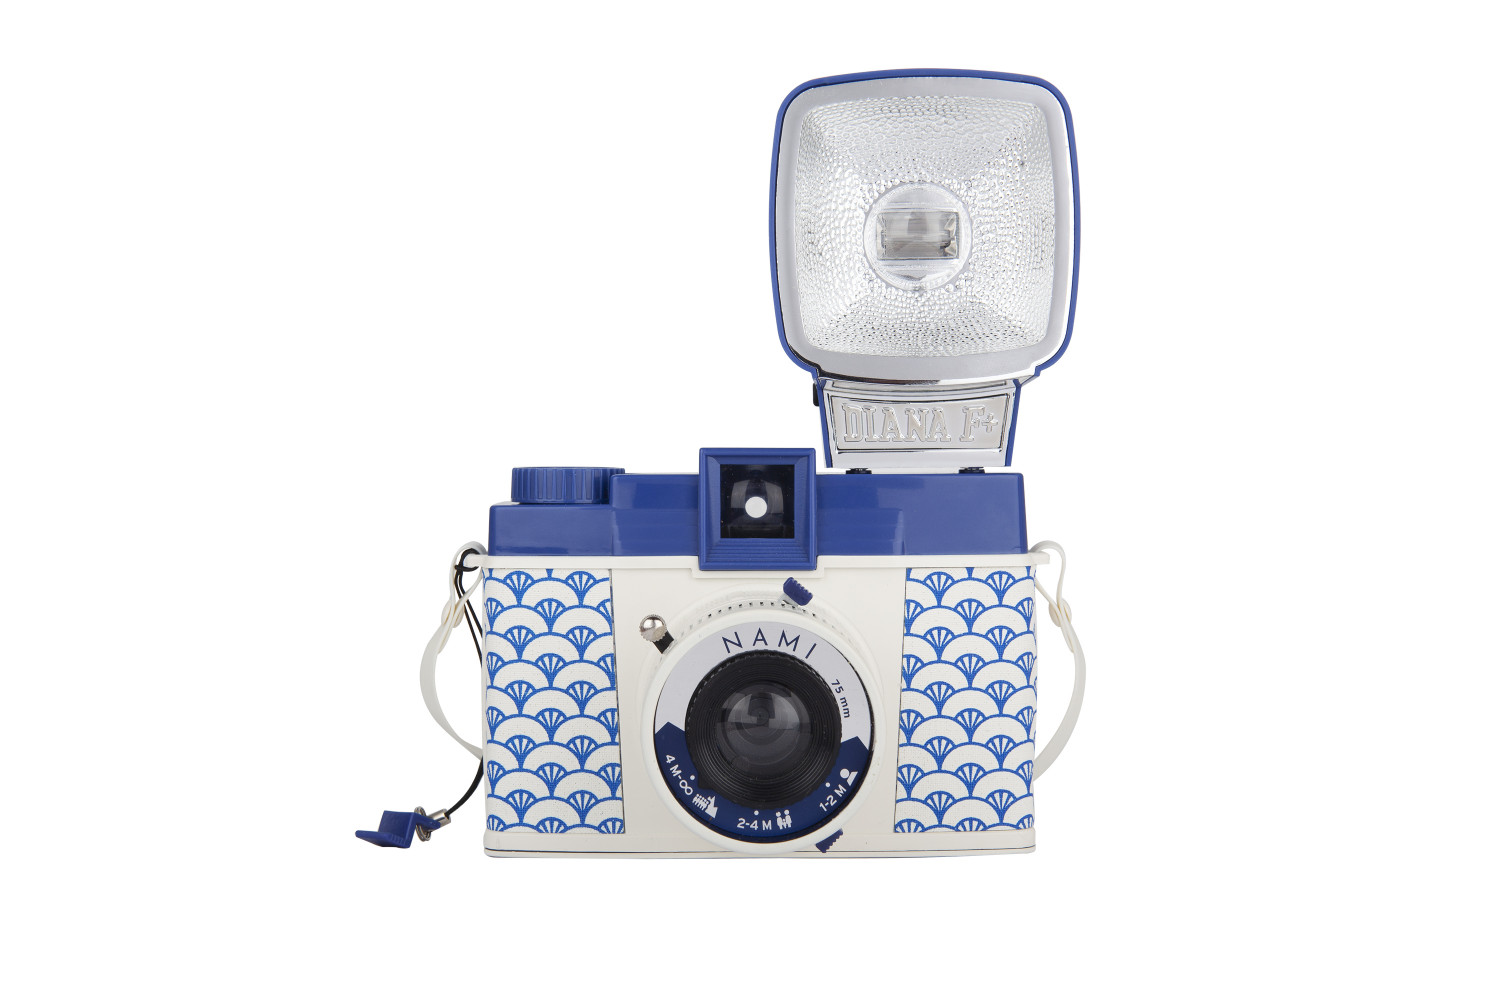 dianaf -nami with-flash front copy 1